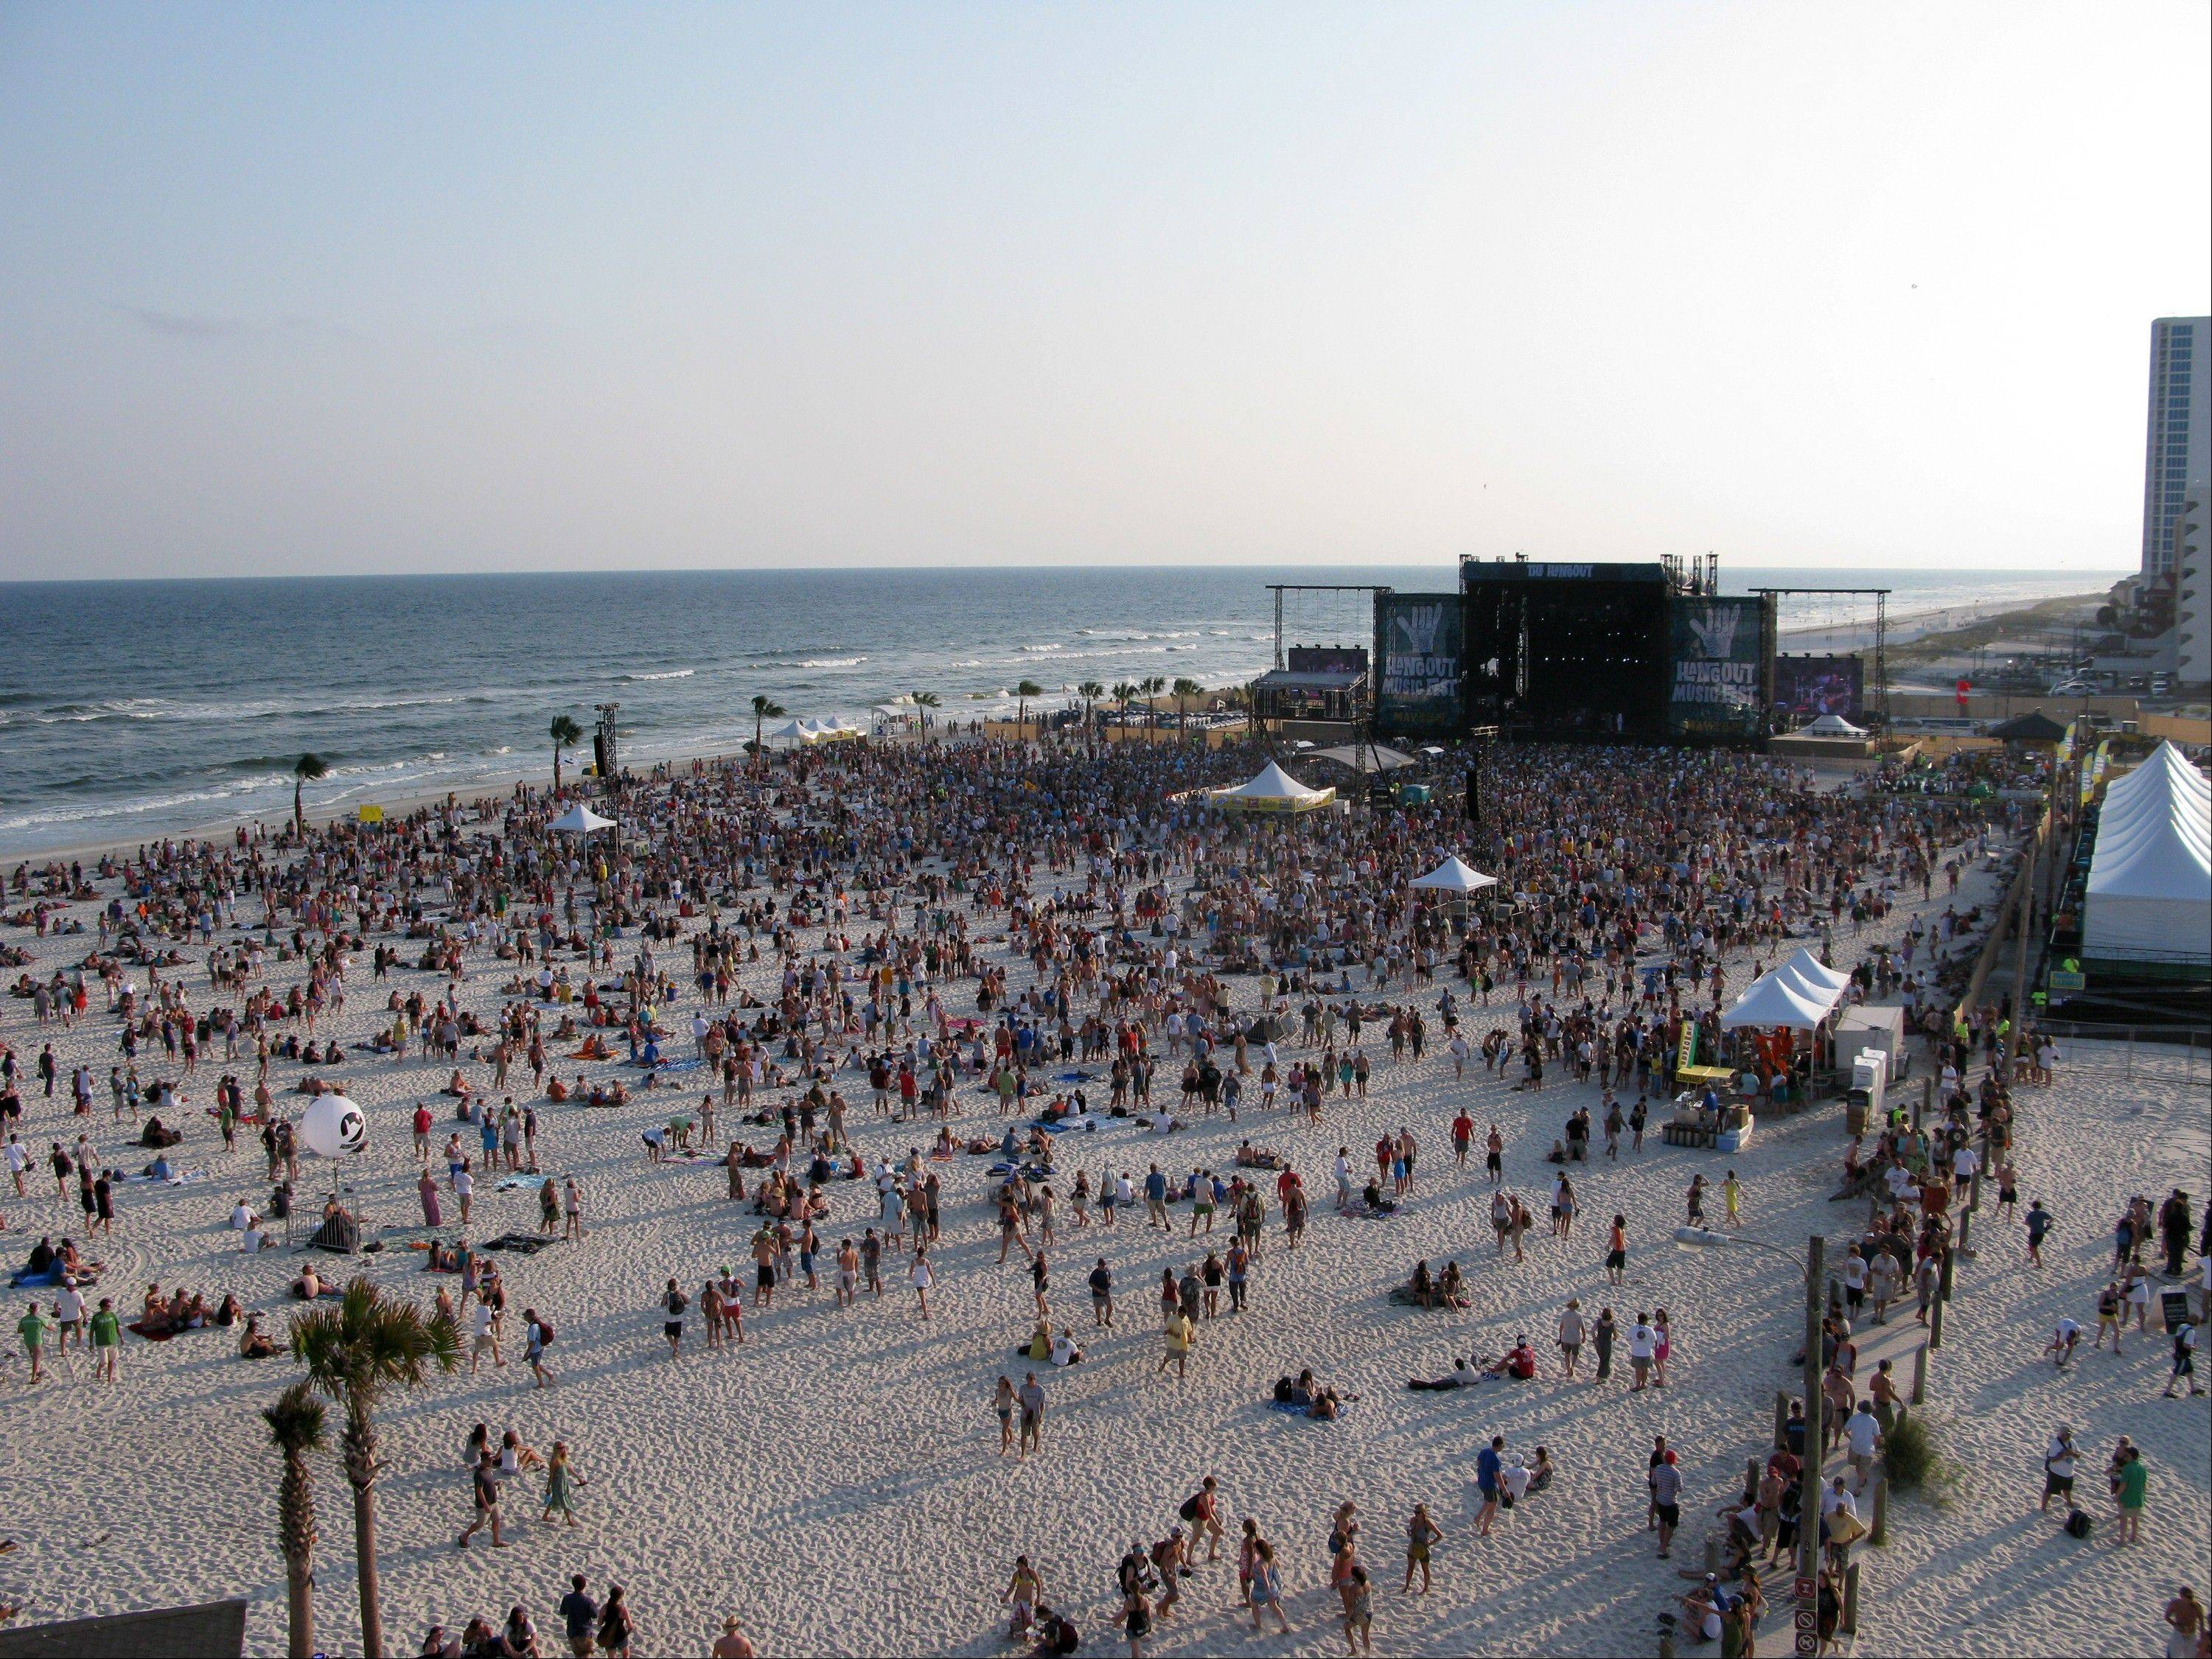 Festival goers enjoy the beach at sunset at the Hangout Music Fest in Gulf Shores, Ala.